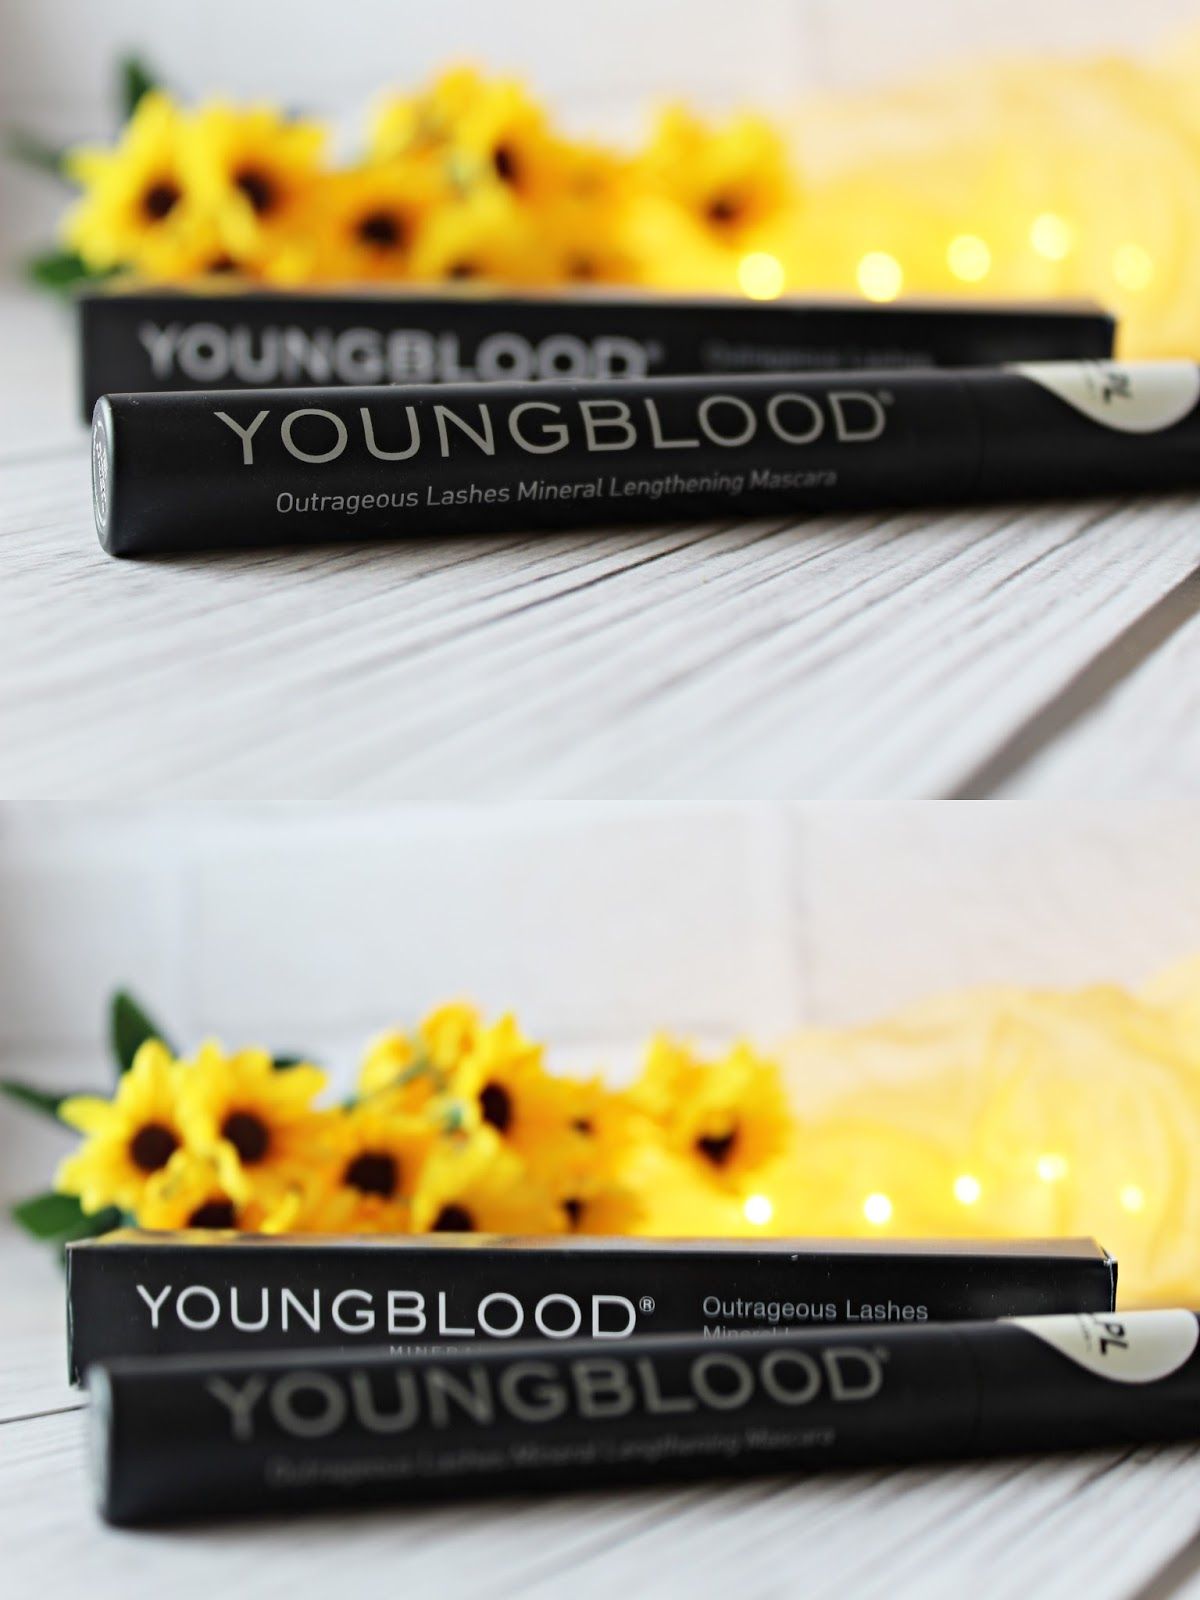 YOUNGBLOOD MINERAL LENGTHENING MASCARA - Pell.pl Kosmetyki Gwiazd